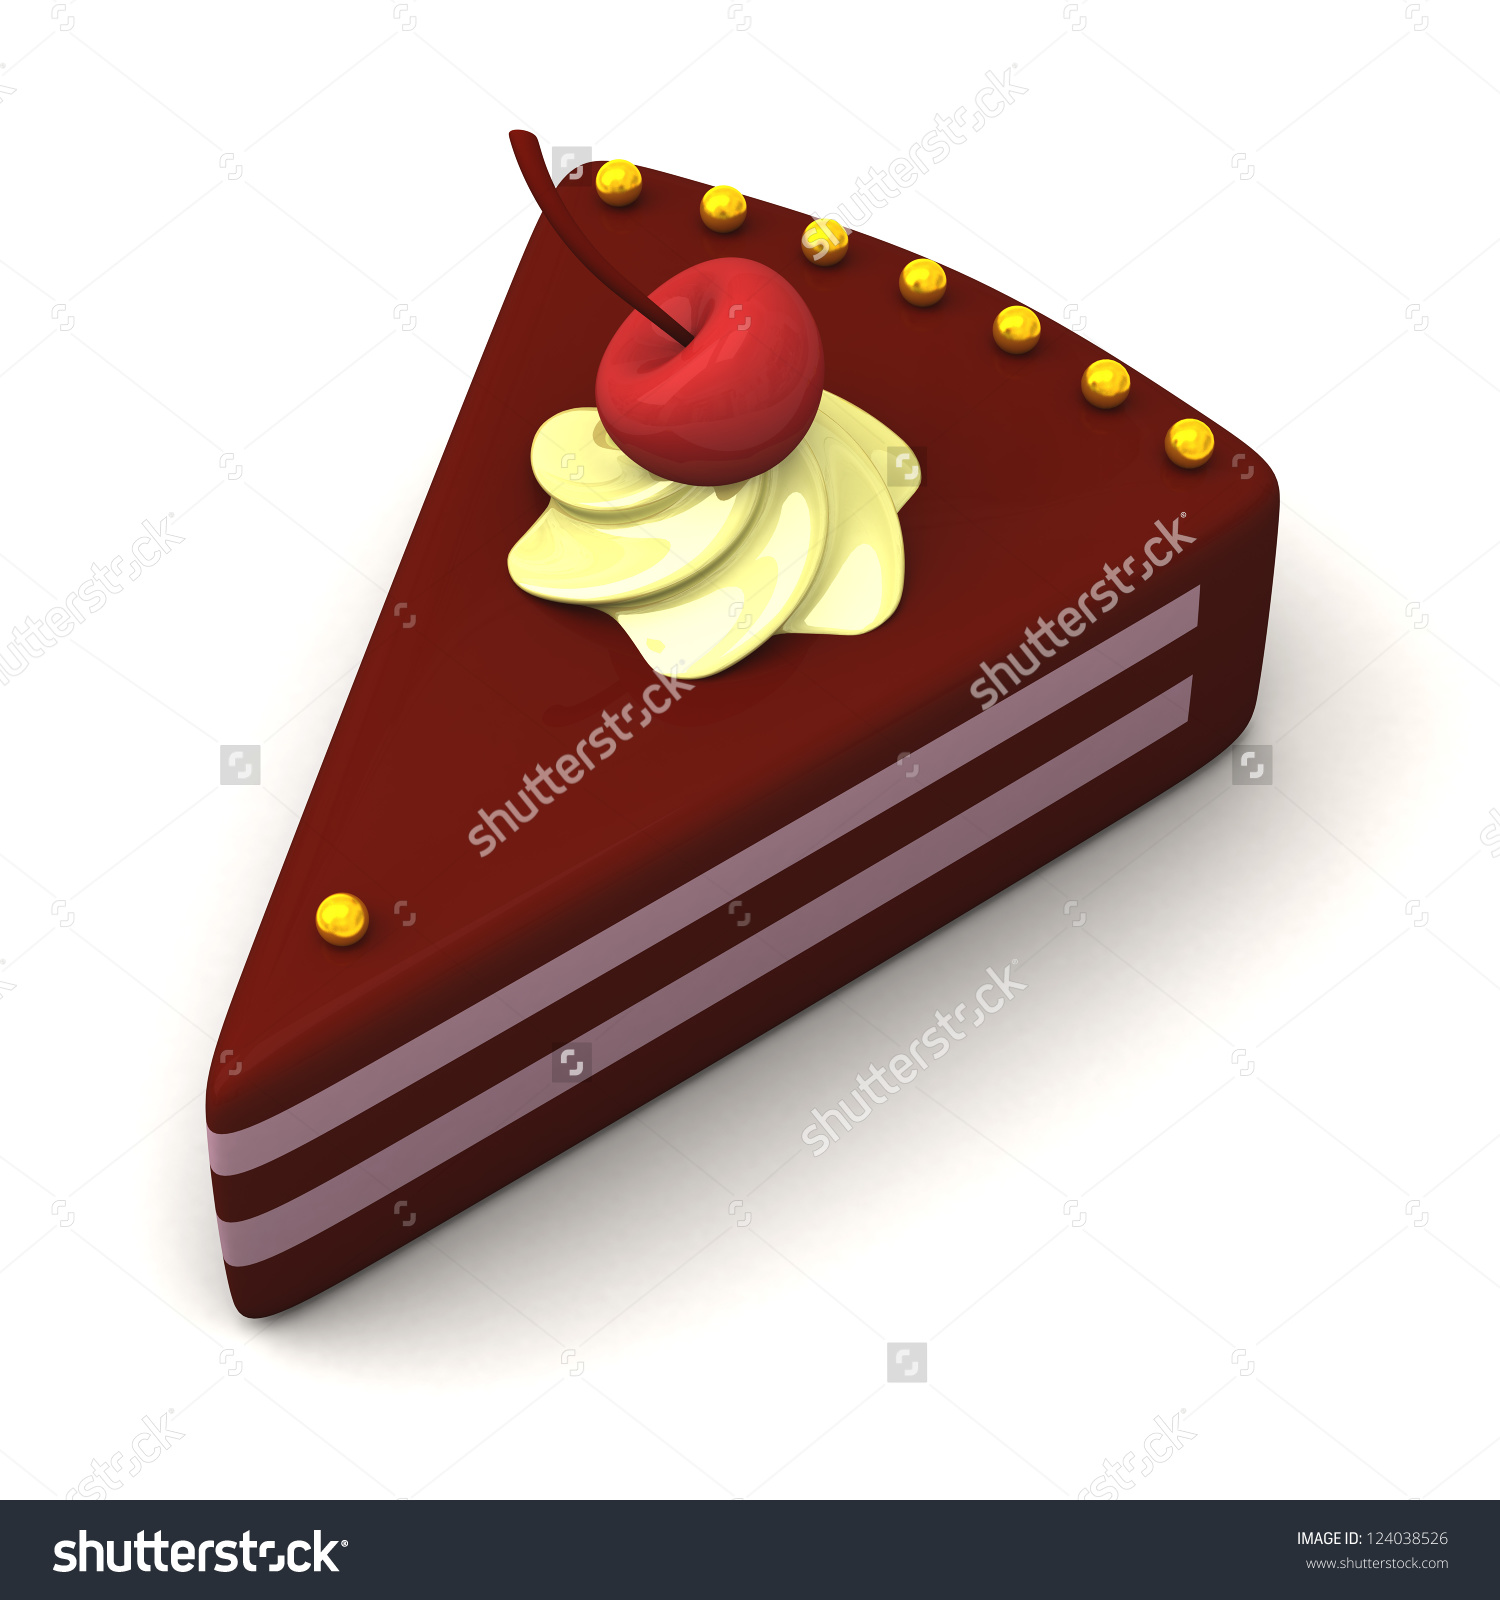 Piece of Cake Idiom Clip Art-Piece of Cake Idiom Clip Art-14